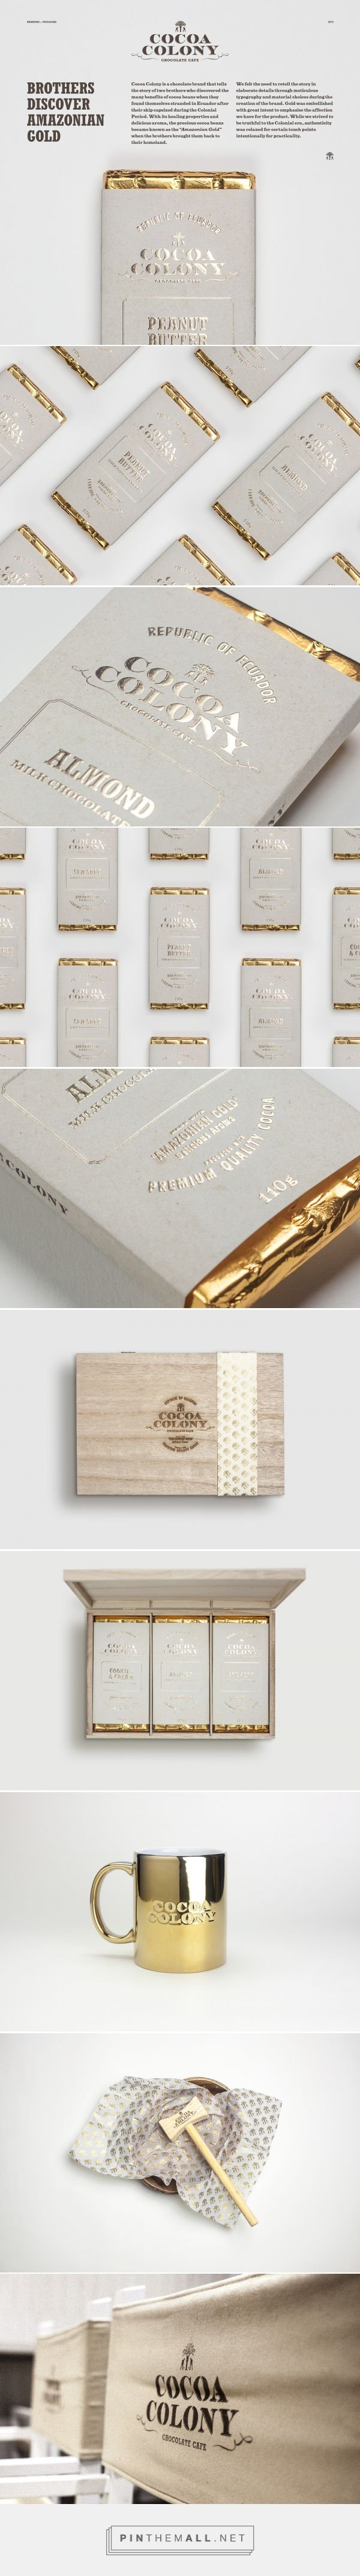 Cocoa Colony Chocolate Branding and Packaging by Bravo | Fivestar Branding Agency – Design and Branding Agency & Curated Inspiration Gallery